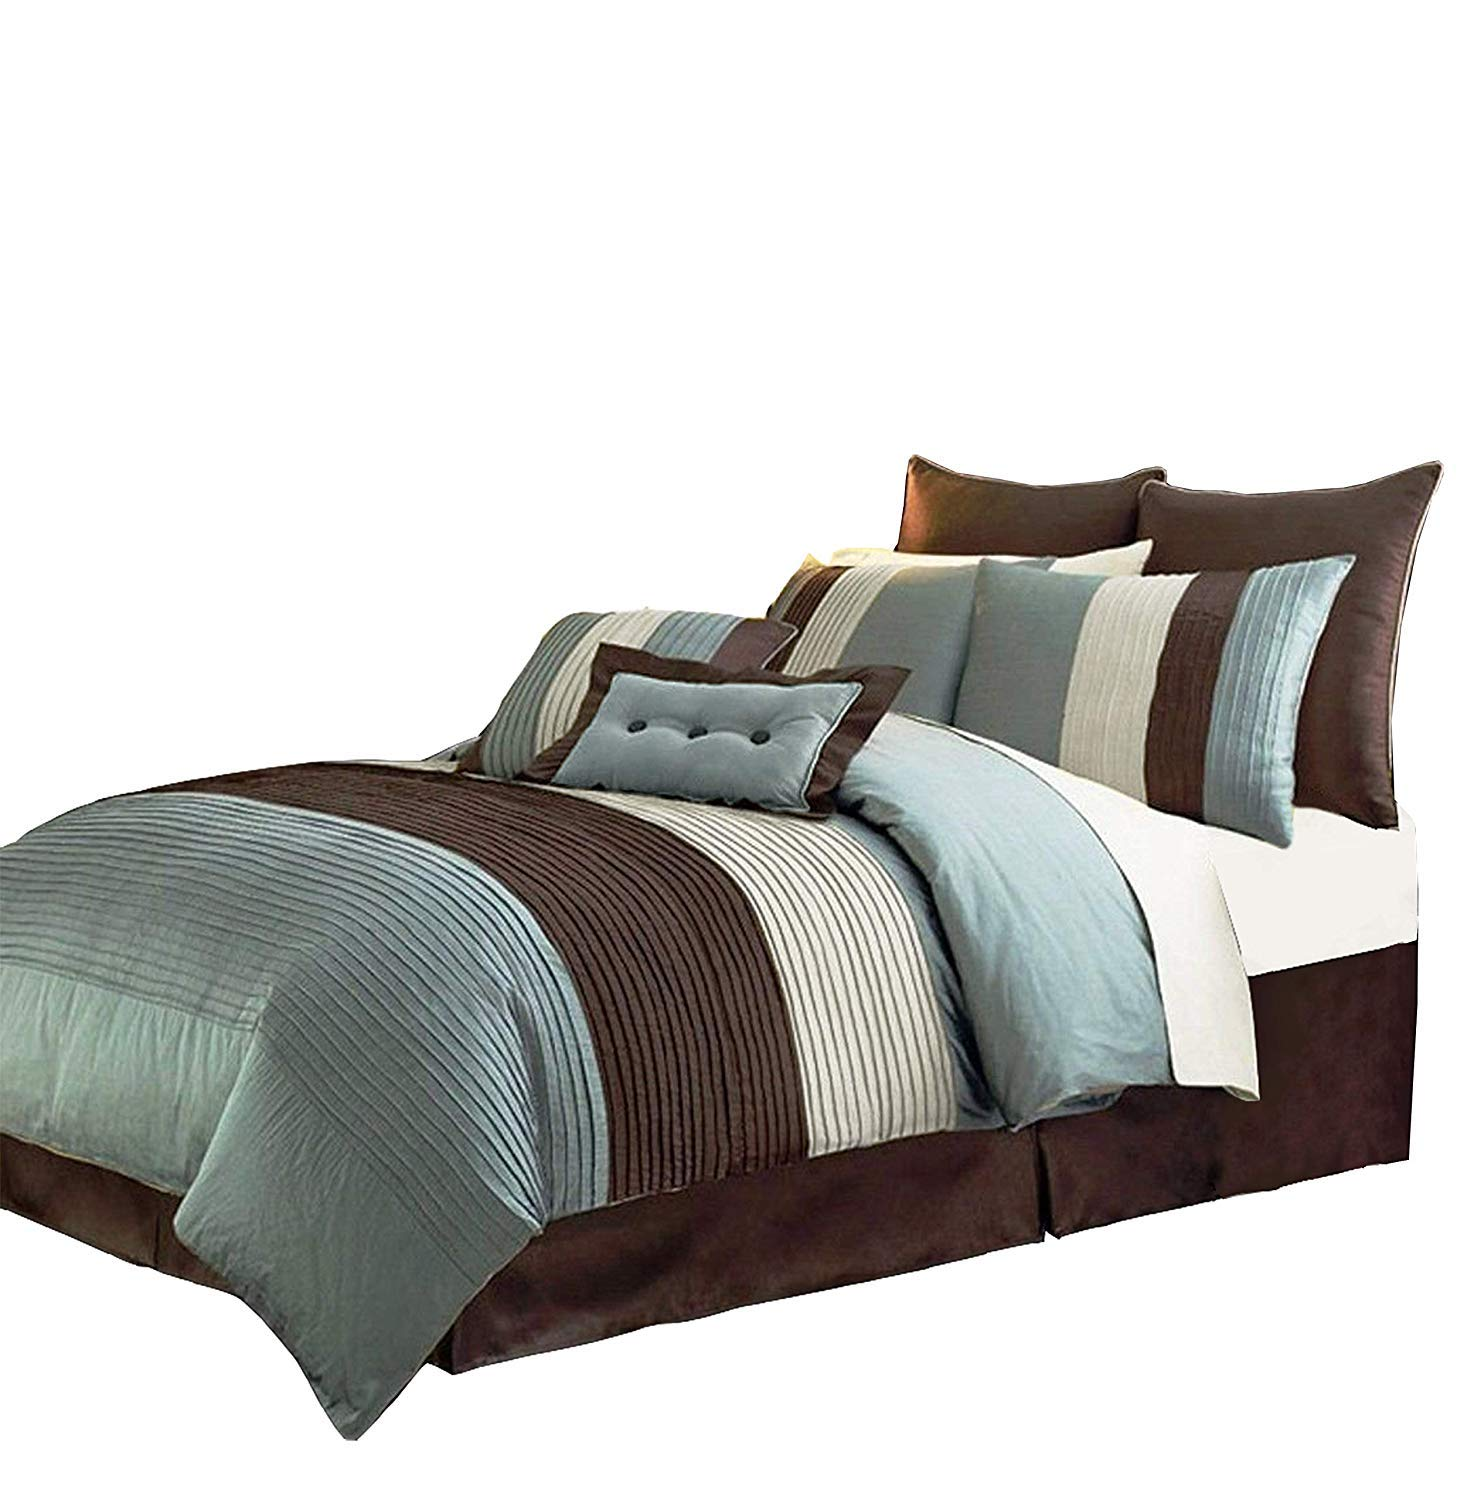 Amazon Com 8 Pieces Off White Blue And Brown Stripe Comforter King